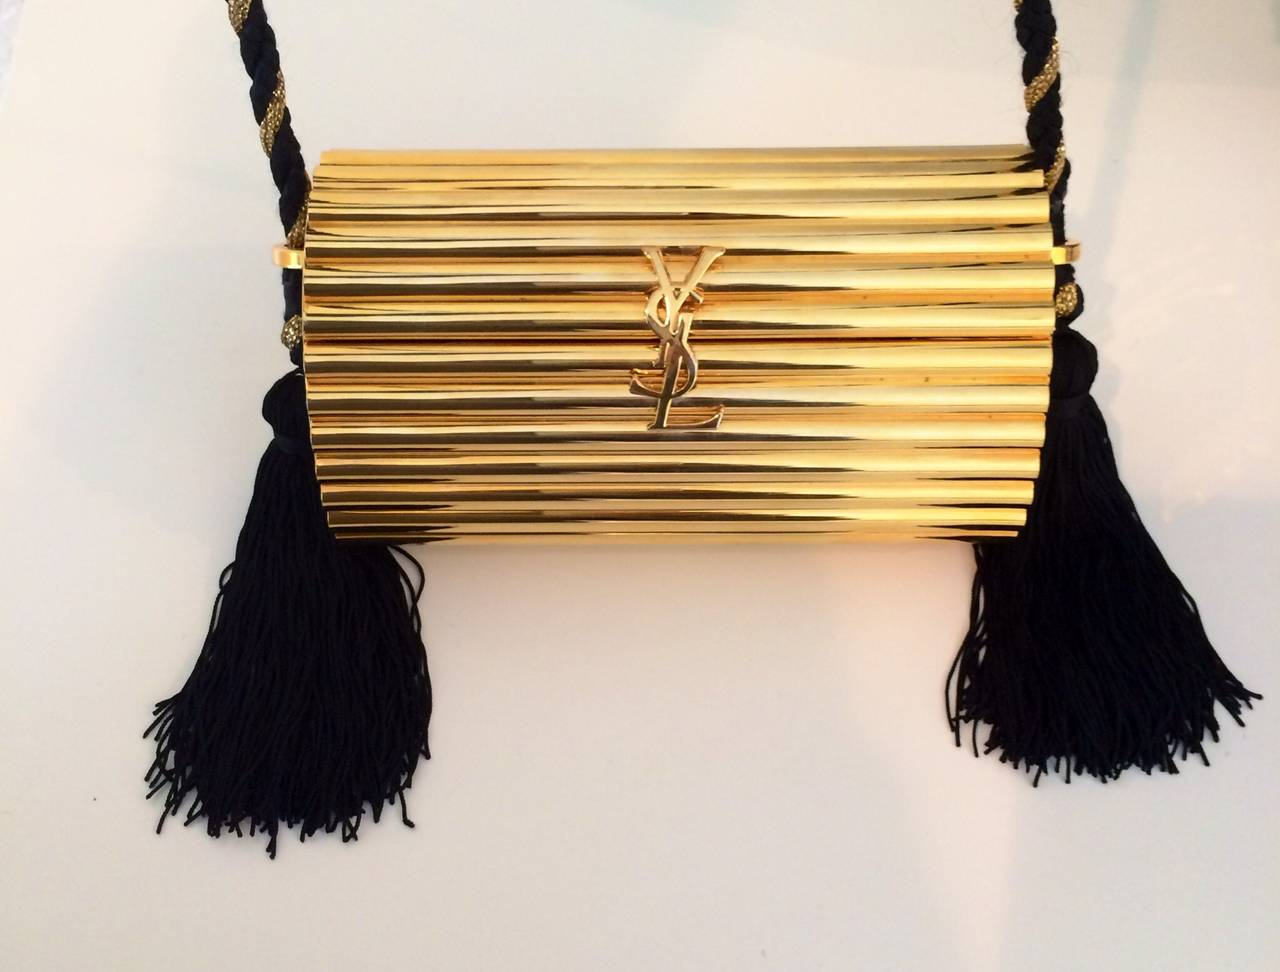 YSL Vintage Gold Metal Black Tassel Evening Bag   Clutch 1980s at ... 0f08426075f3a